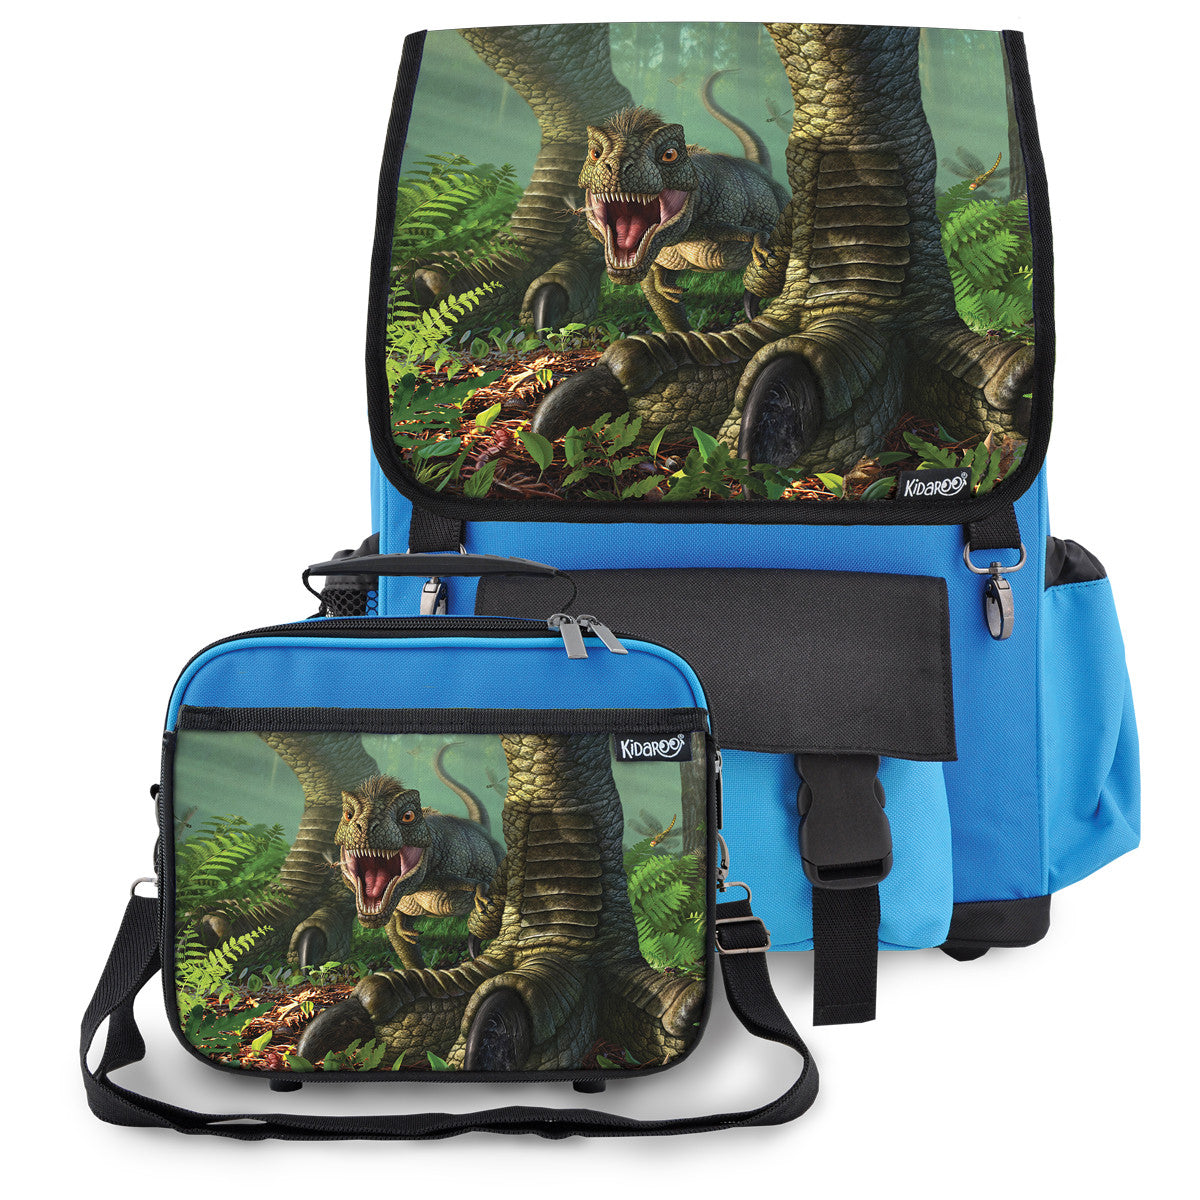 Kidaroo Blue Baby Wee Rex Dinosaur School Backpack & Lunchbox Set for Boys, Girls, Kids